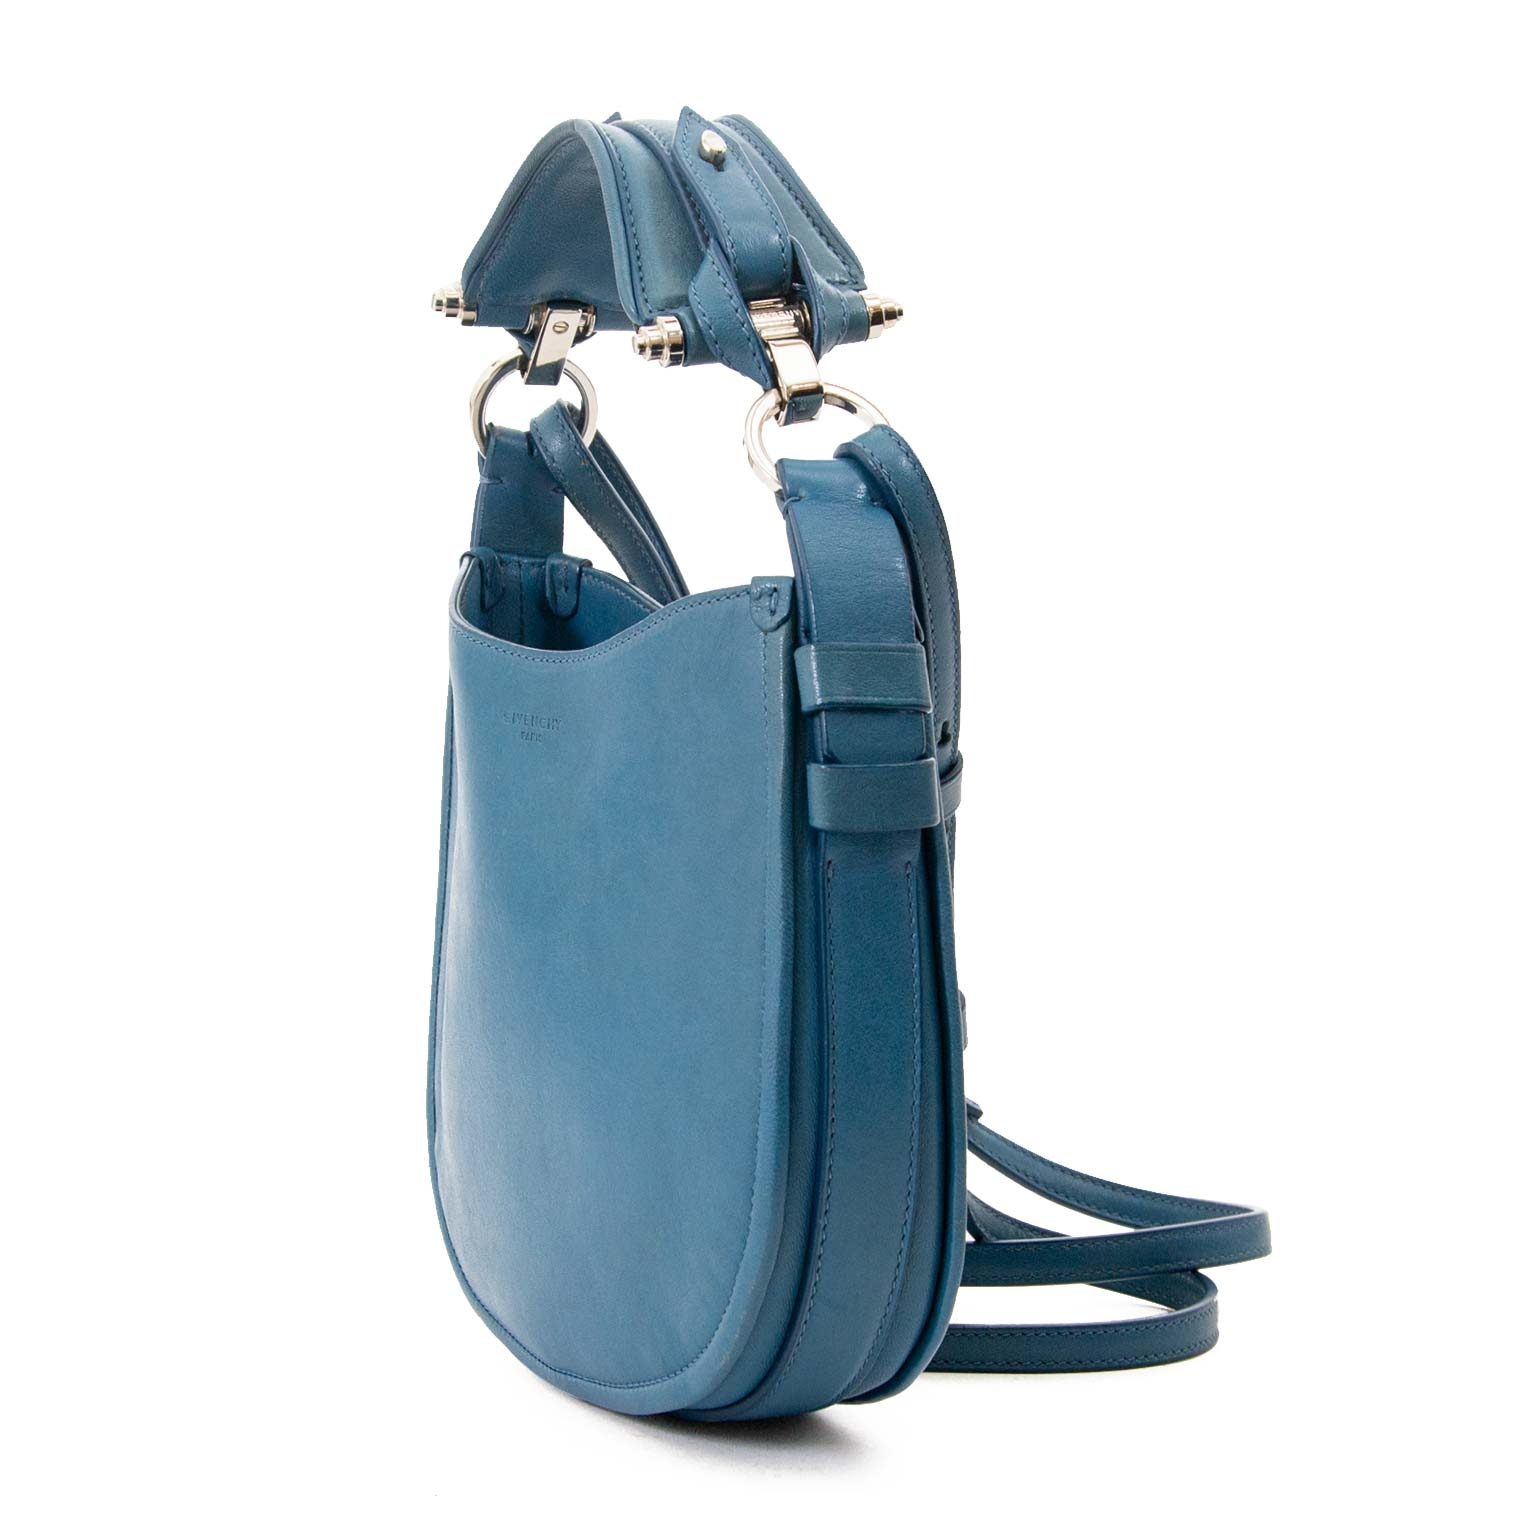 Buy second hand authentic Givenchy Small Blue Obsedia Hobo Bag safe online at labellov.com